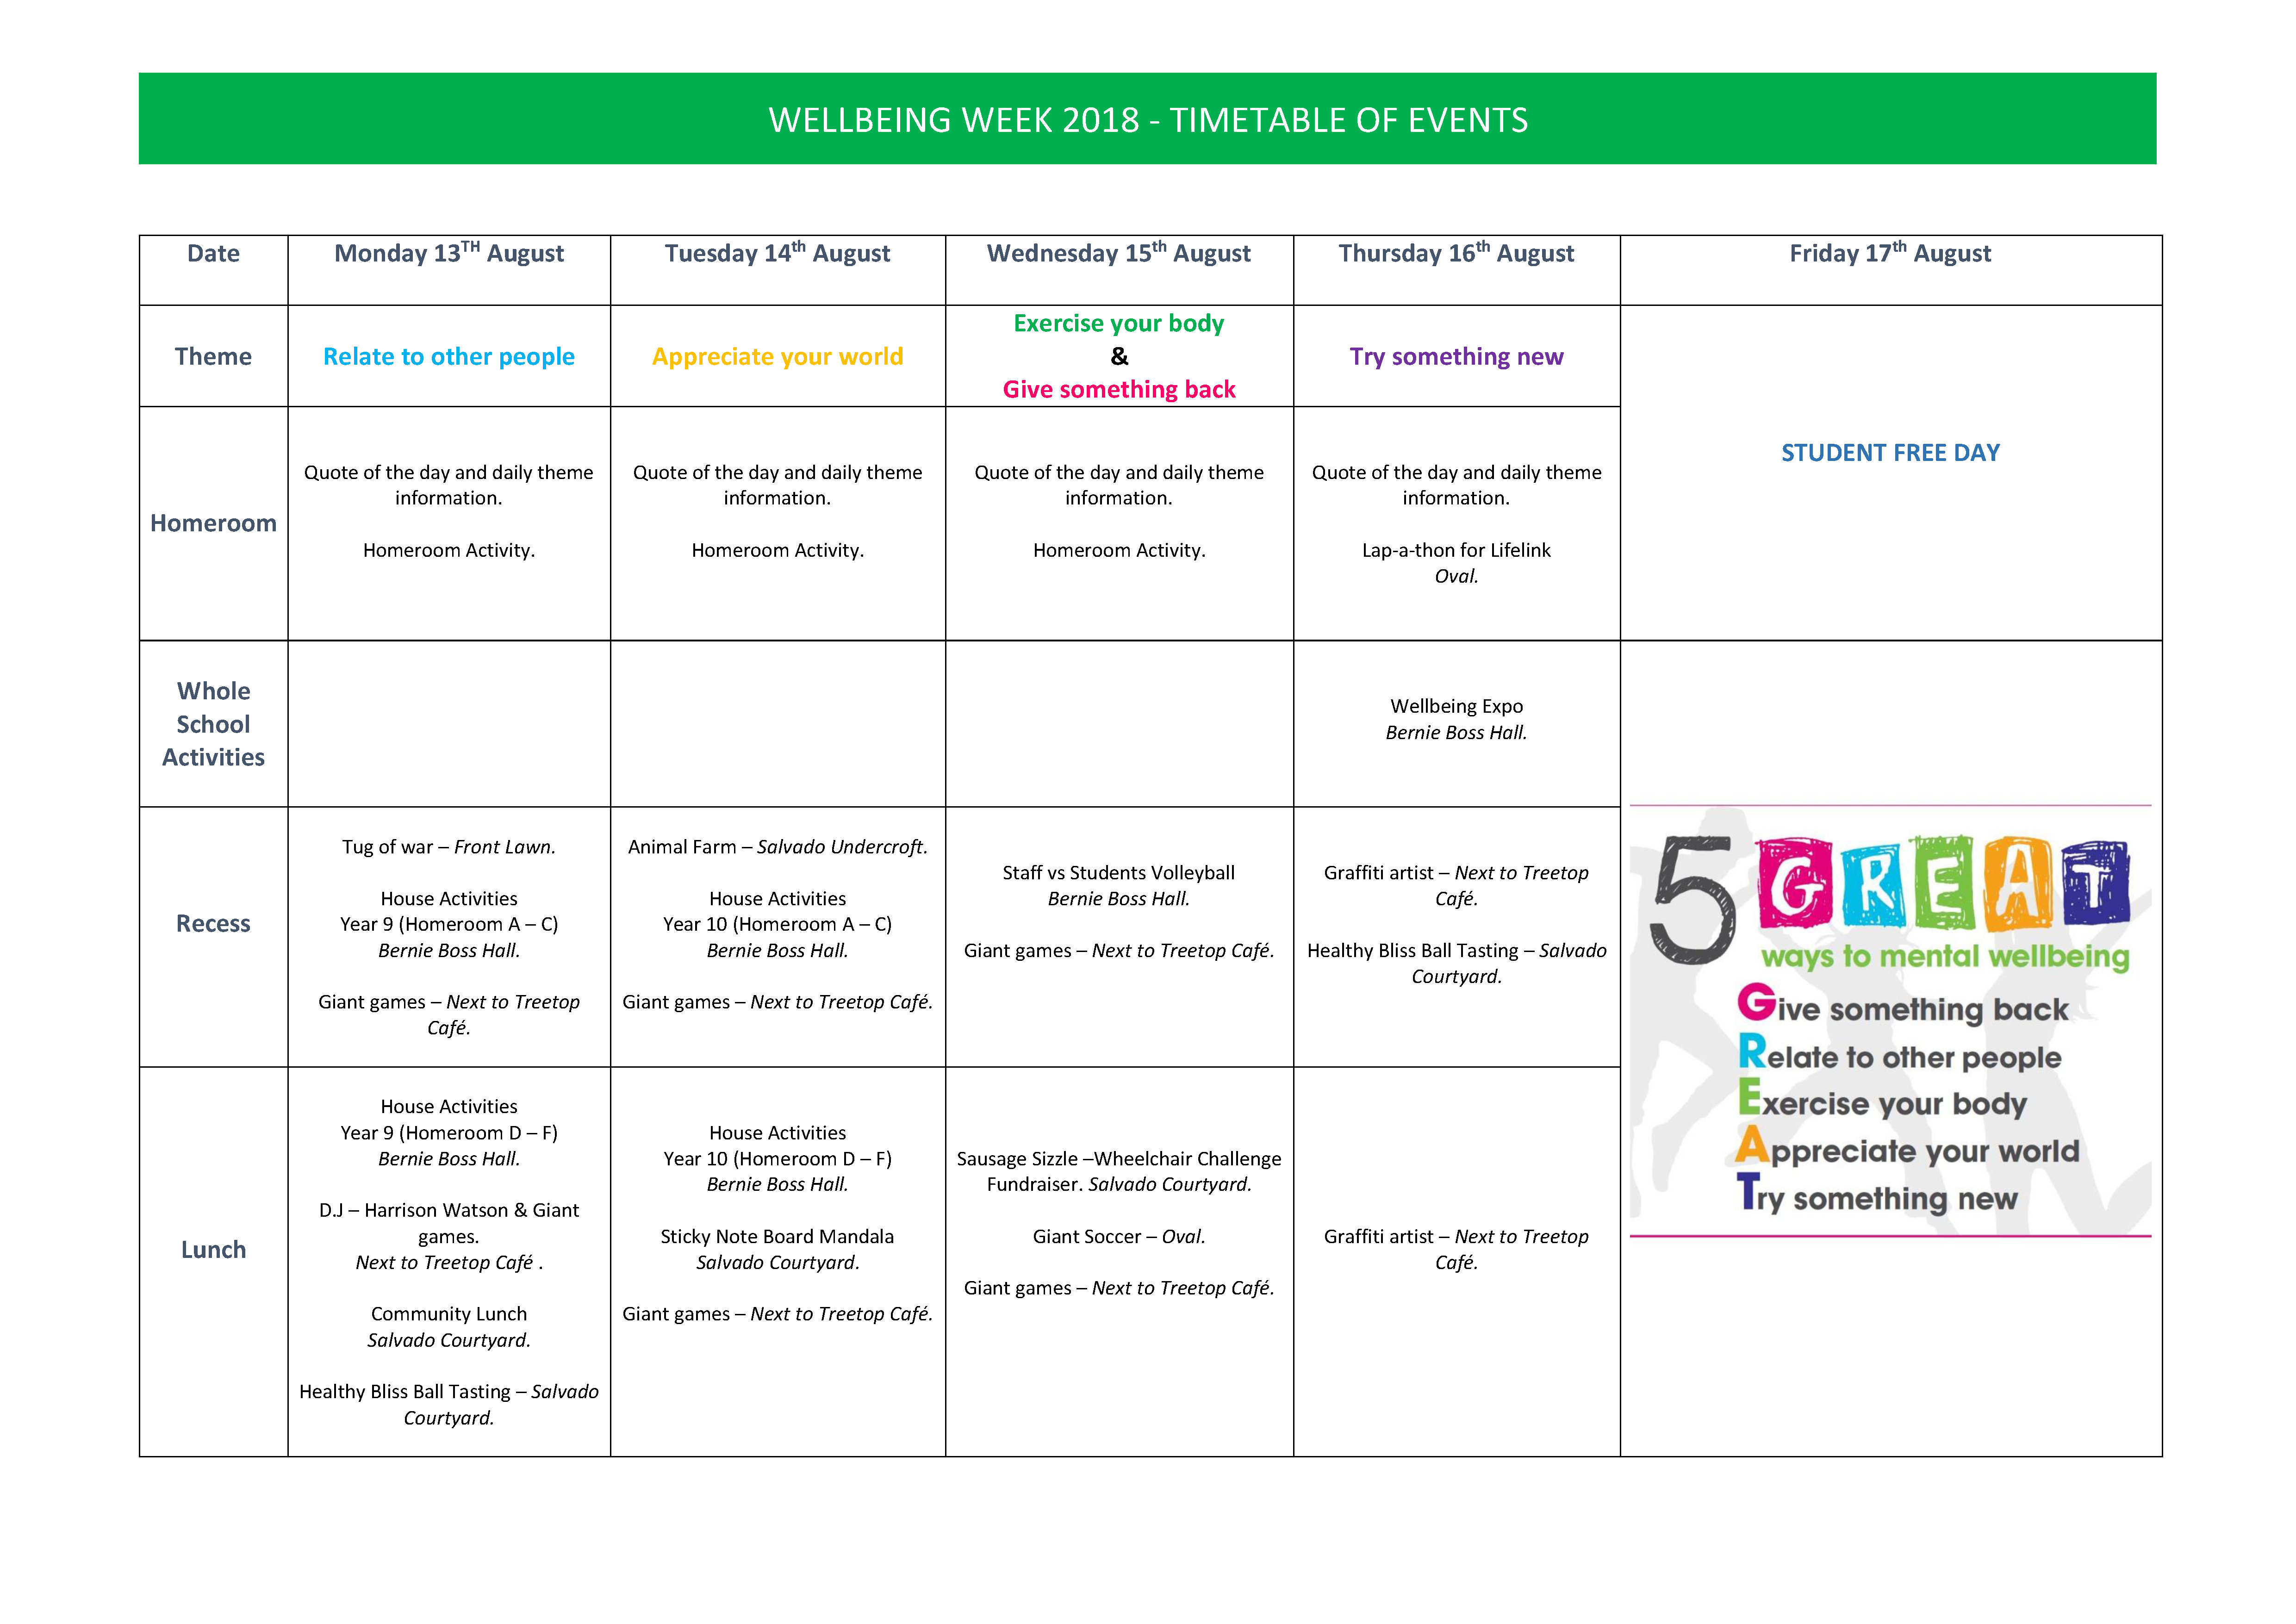 Timetable of Events Wellbeing Week 2018